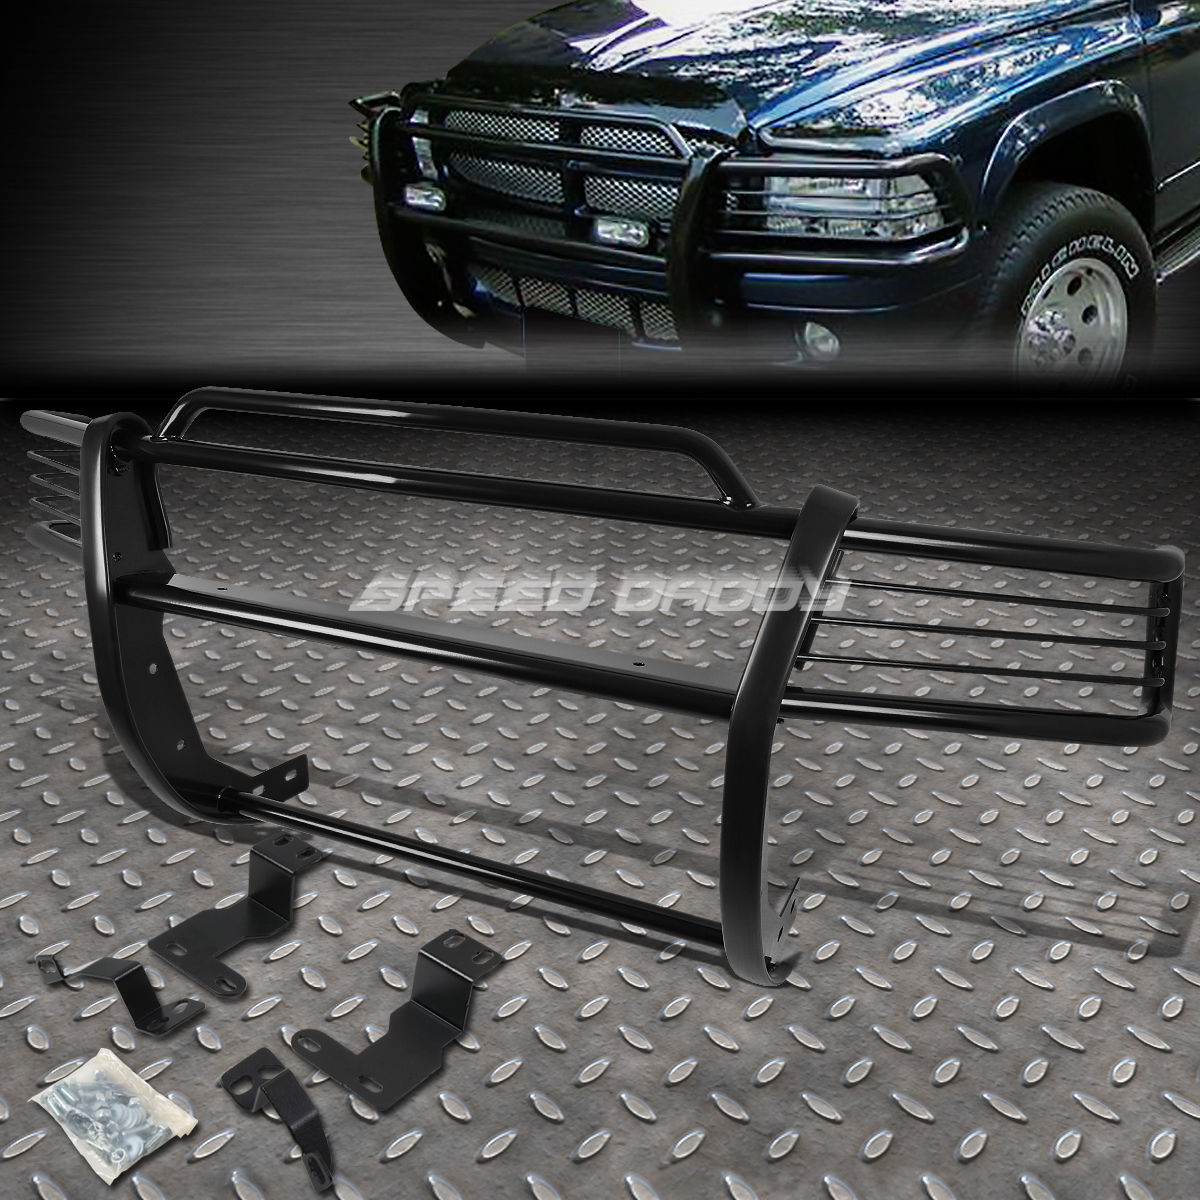 グリル 黒塗装されたマイルストーンフロントバンパーグリルガードfor 97-04 DAKOTA / 98-03 DURANGO BLACK COATED MILD STEEL FRONT BUMPER GRILL GUARD FOR 97-04 DAKOTA/98-03 DURANGO